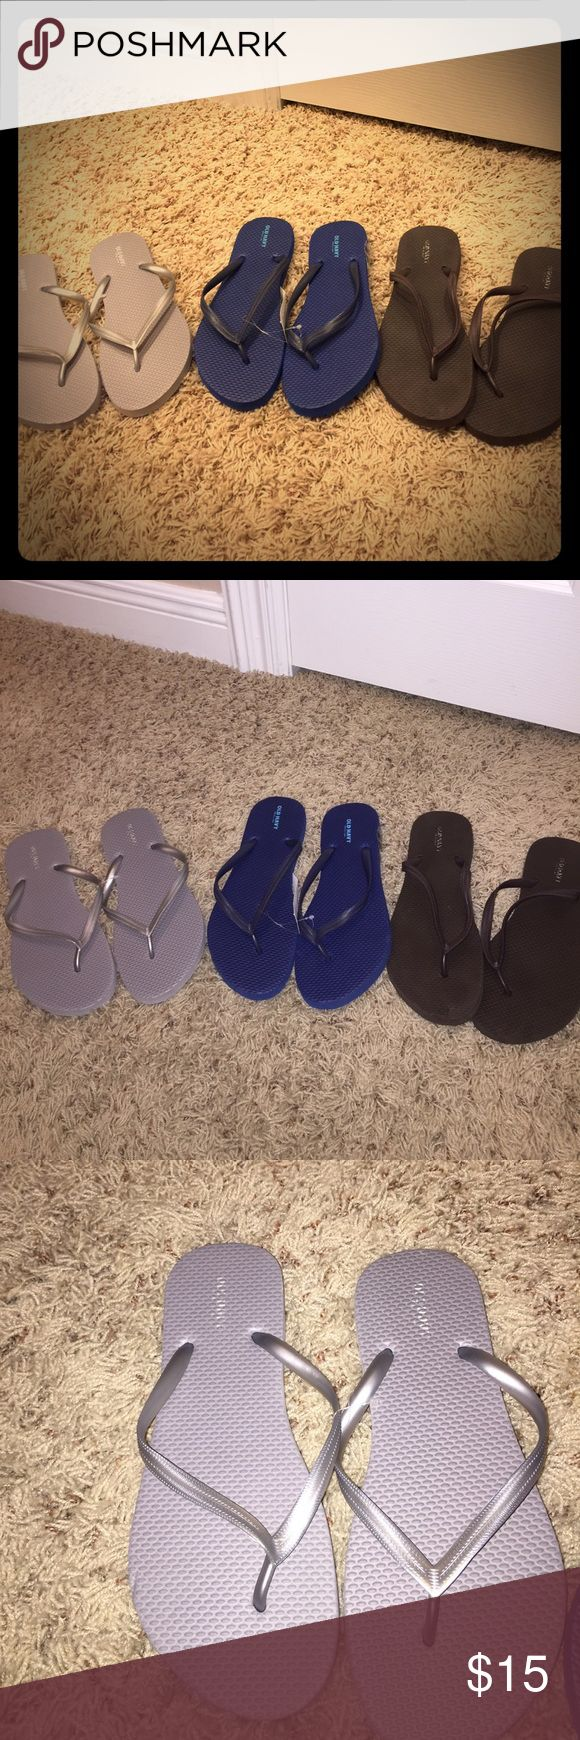 Old Navy flip flops Never worn sandals colors blue, brown and silver all size 7. Old Navy Shoes Slippers